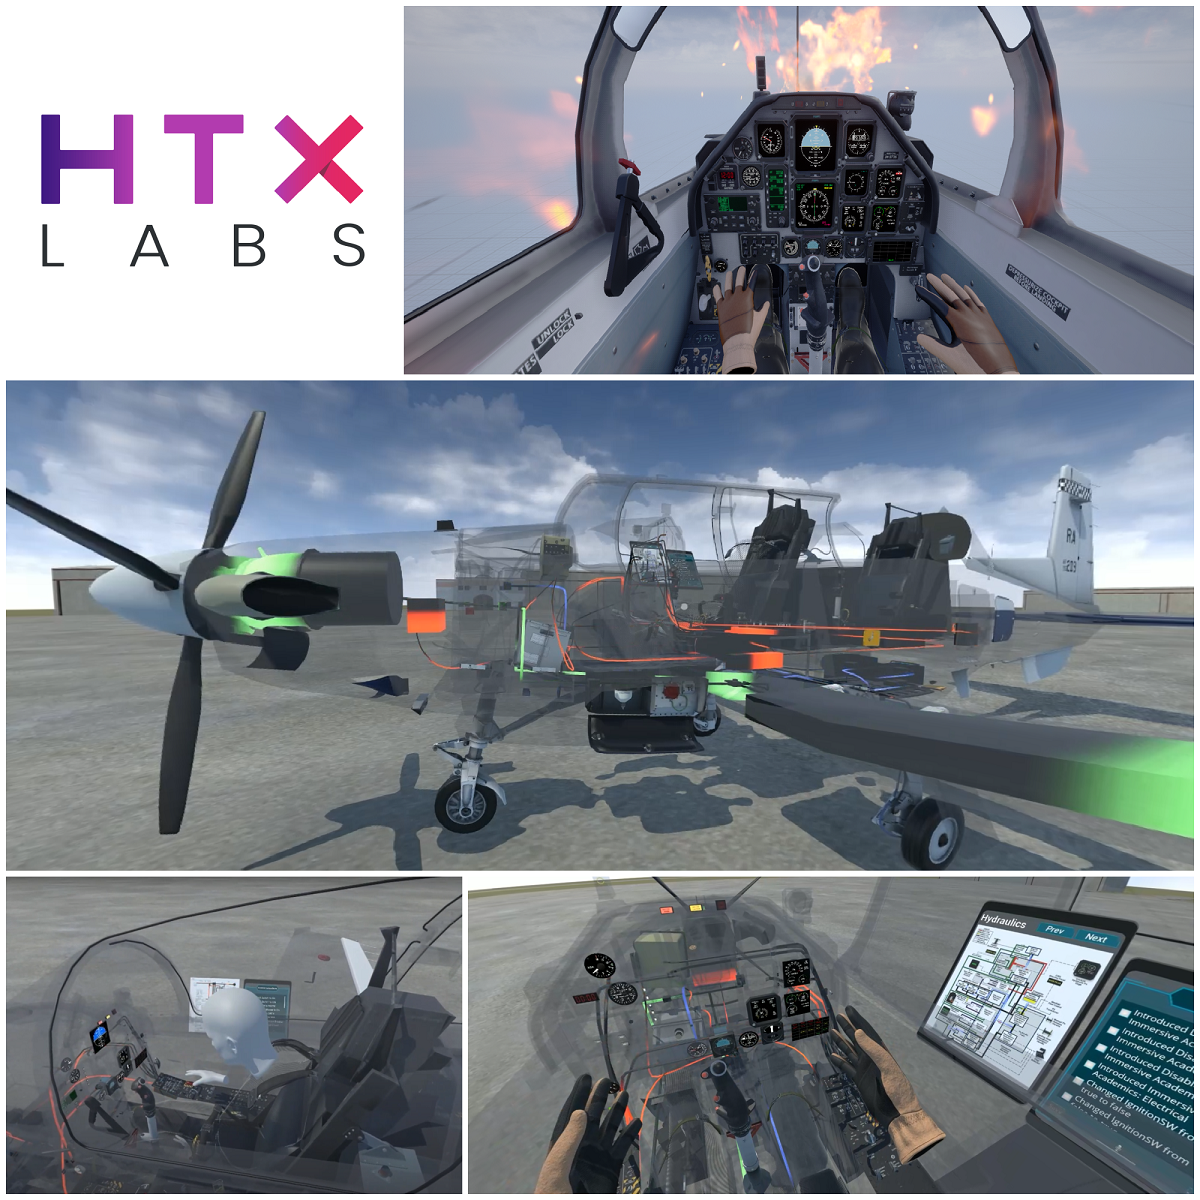 HTX Labs Awarded SBIR Phase II Contract with the US Navy to Support Chief of Naval Air Training (CNATRA) Primary Flight Training Program